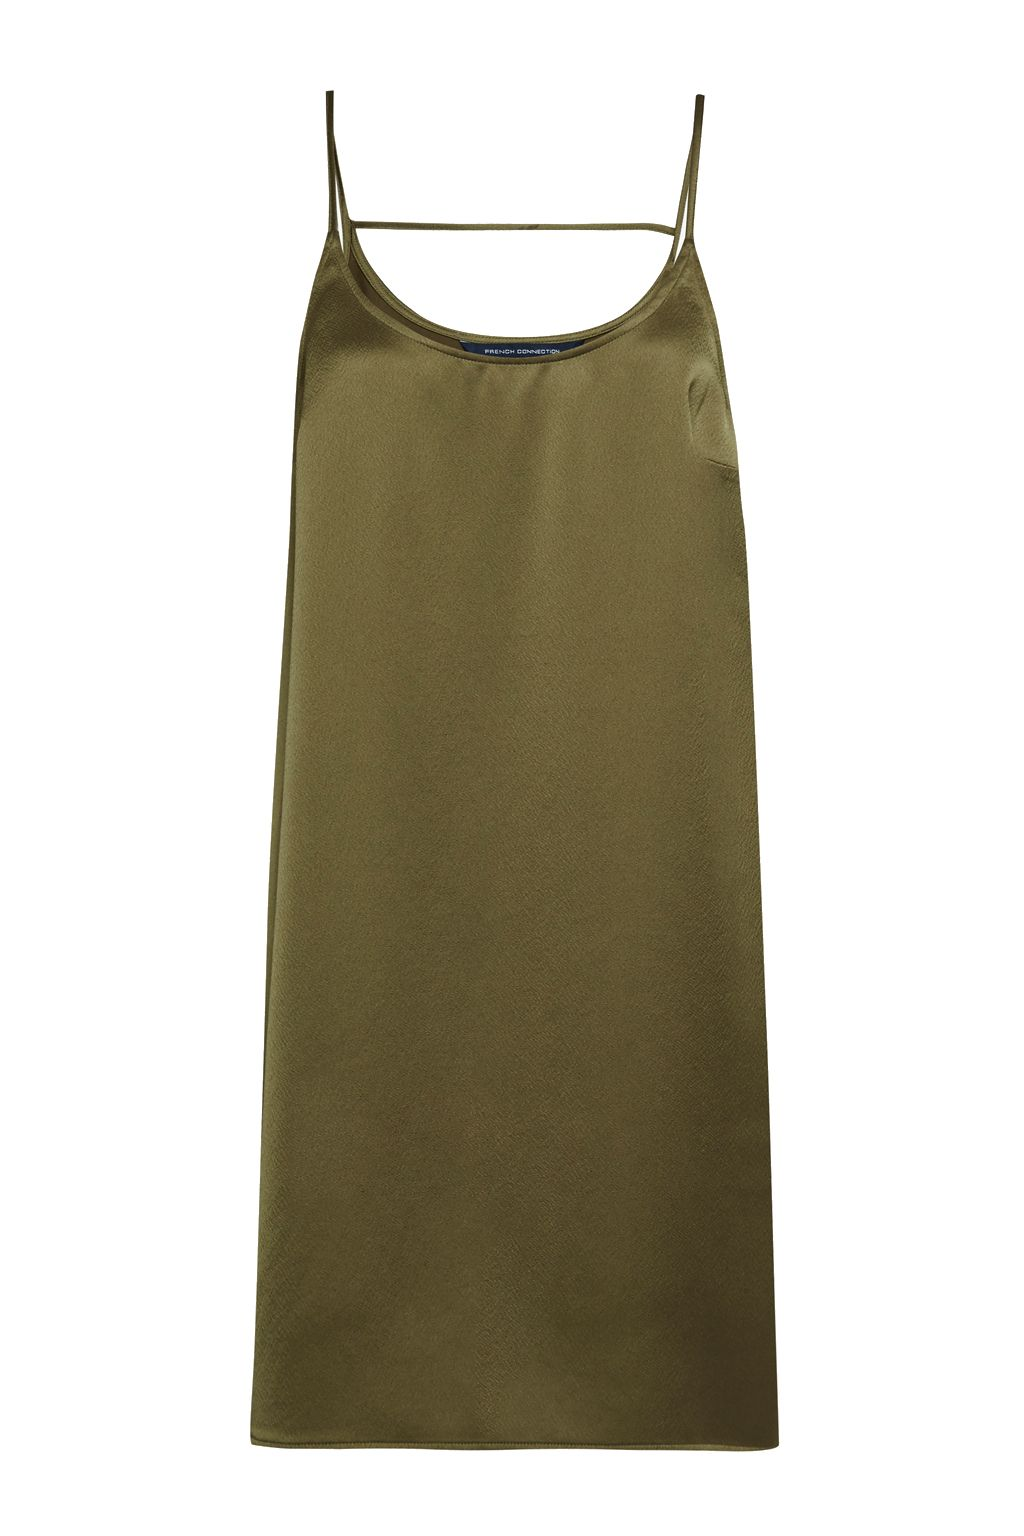 French Connection Sasha Satin Slip Dress, Green